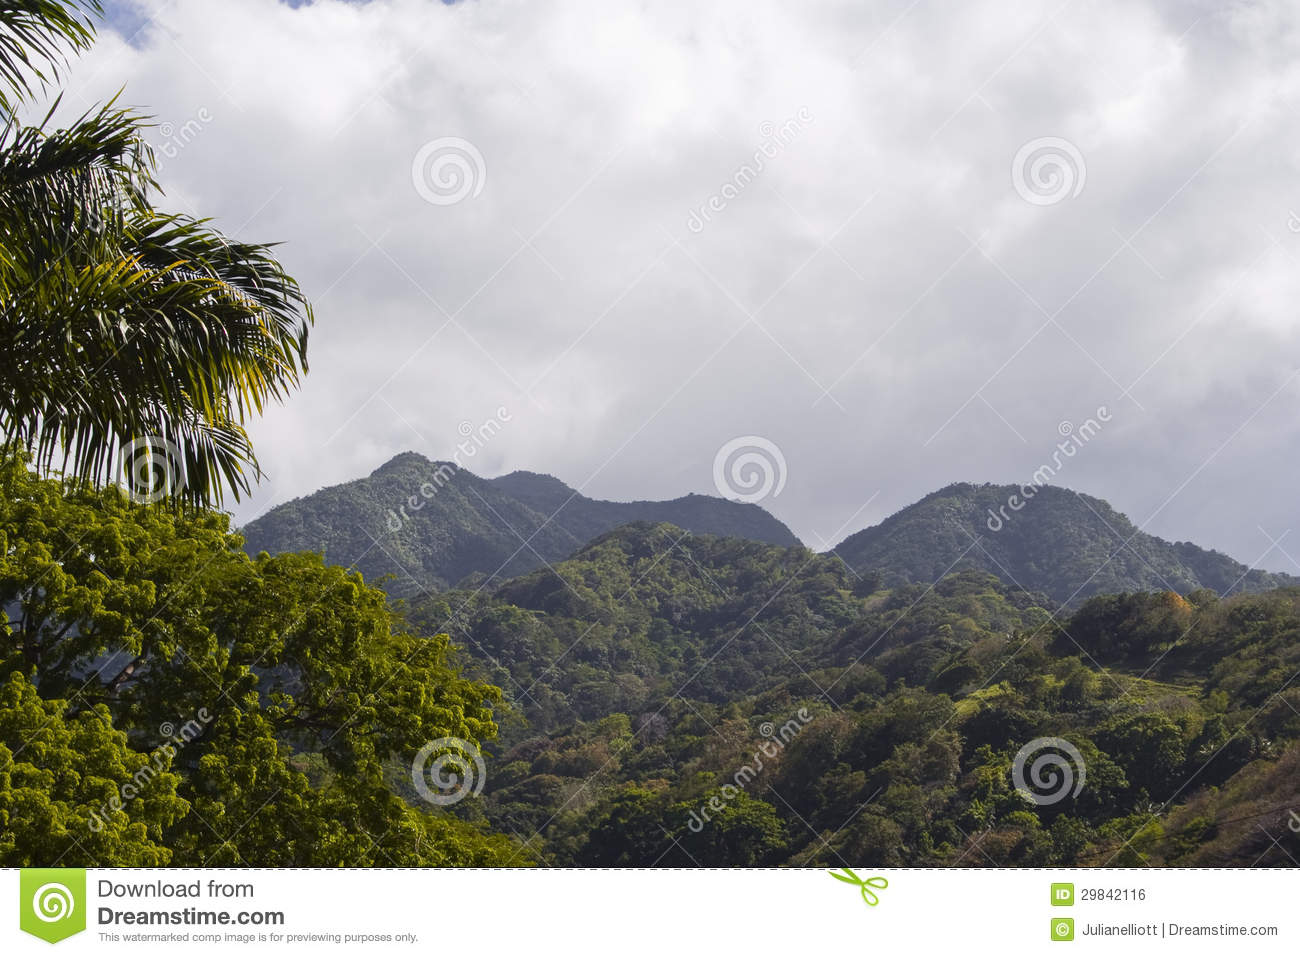 Explore The Beauty Of Caribbean: Mountain Scenery Of Martinique Royalty Free Stock Image